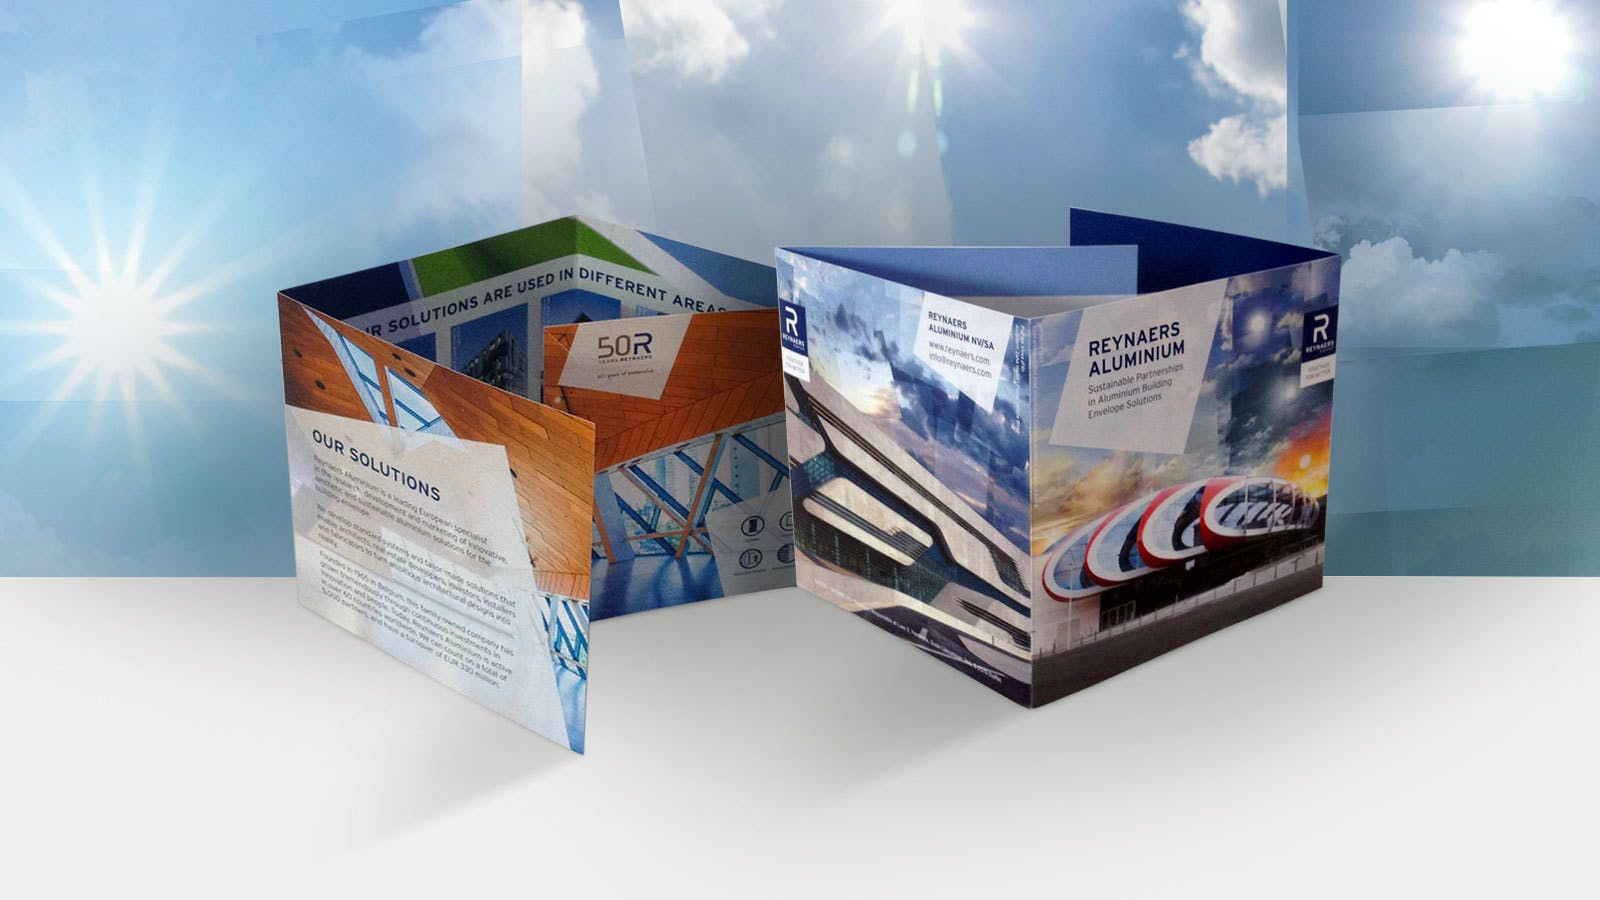 755 reynaers aluminium ppt and concise brochure big5